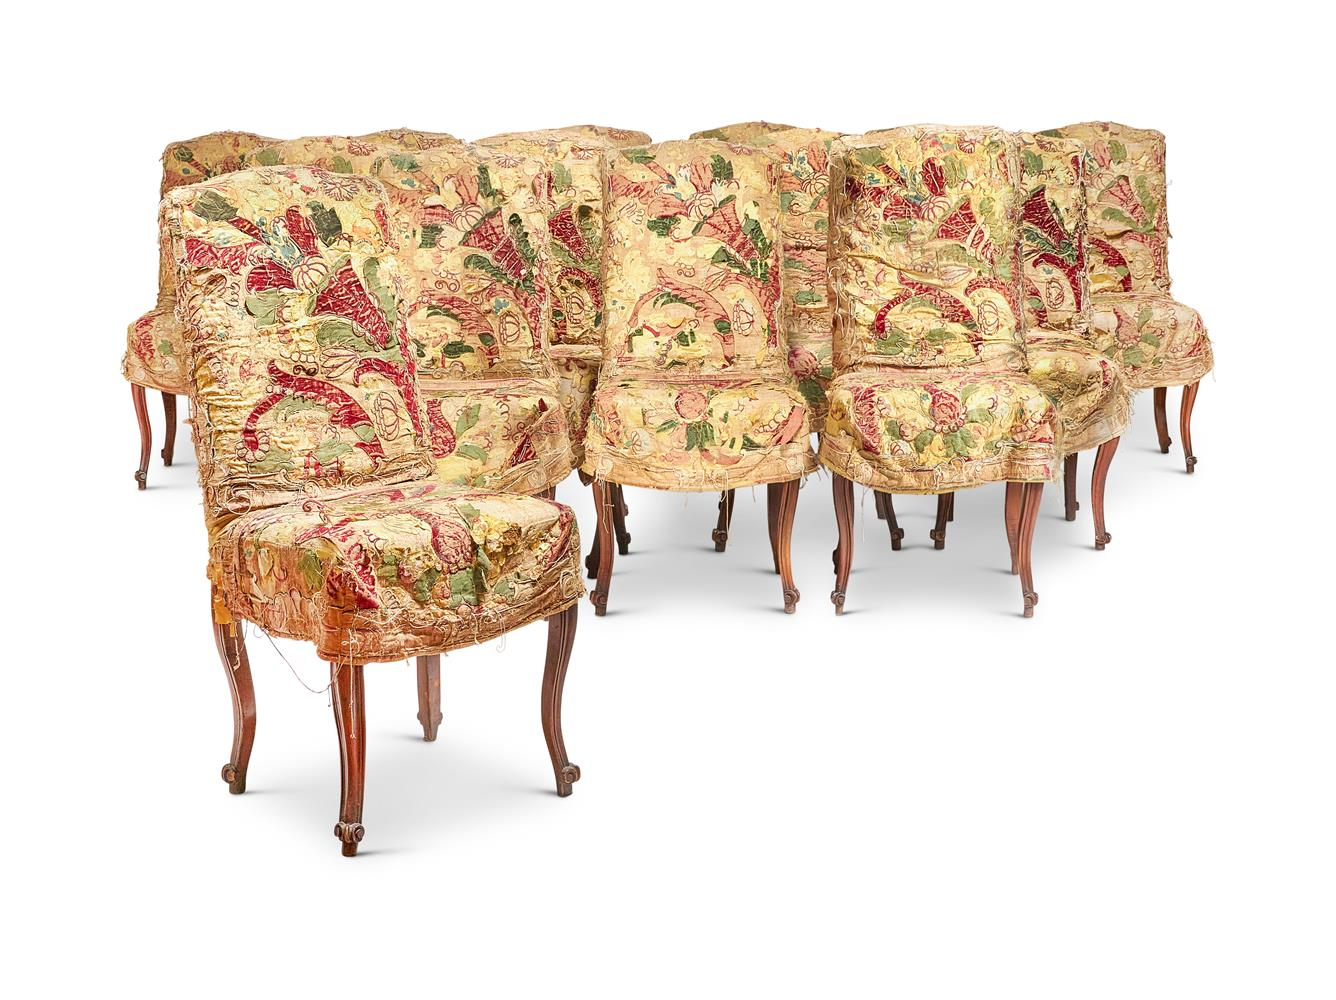 A SET OF FOURTEEN LOUIS XV STYLE WALNUT AND UPHOLSTERED SIDE CHAIRS - Image 2 of 3